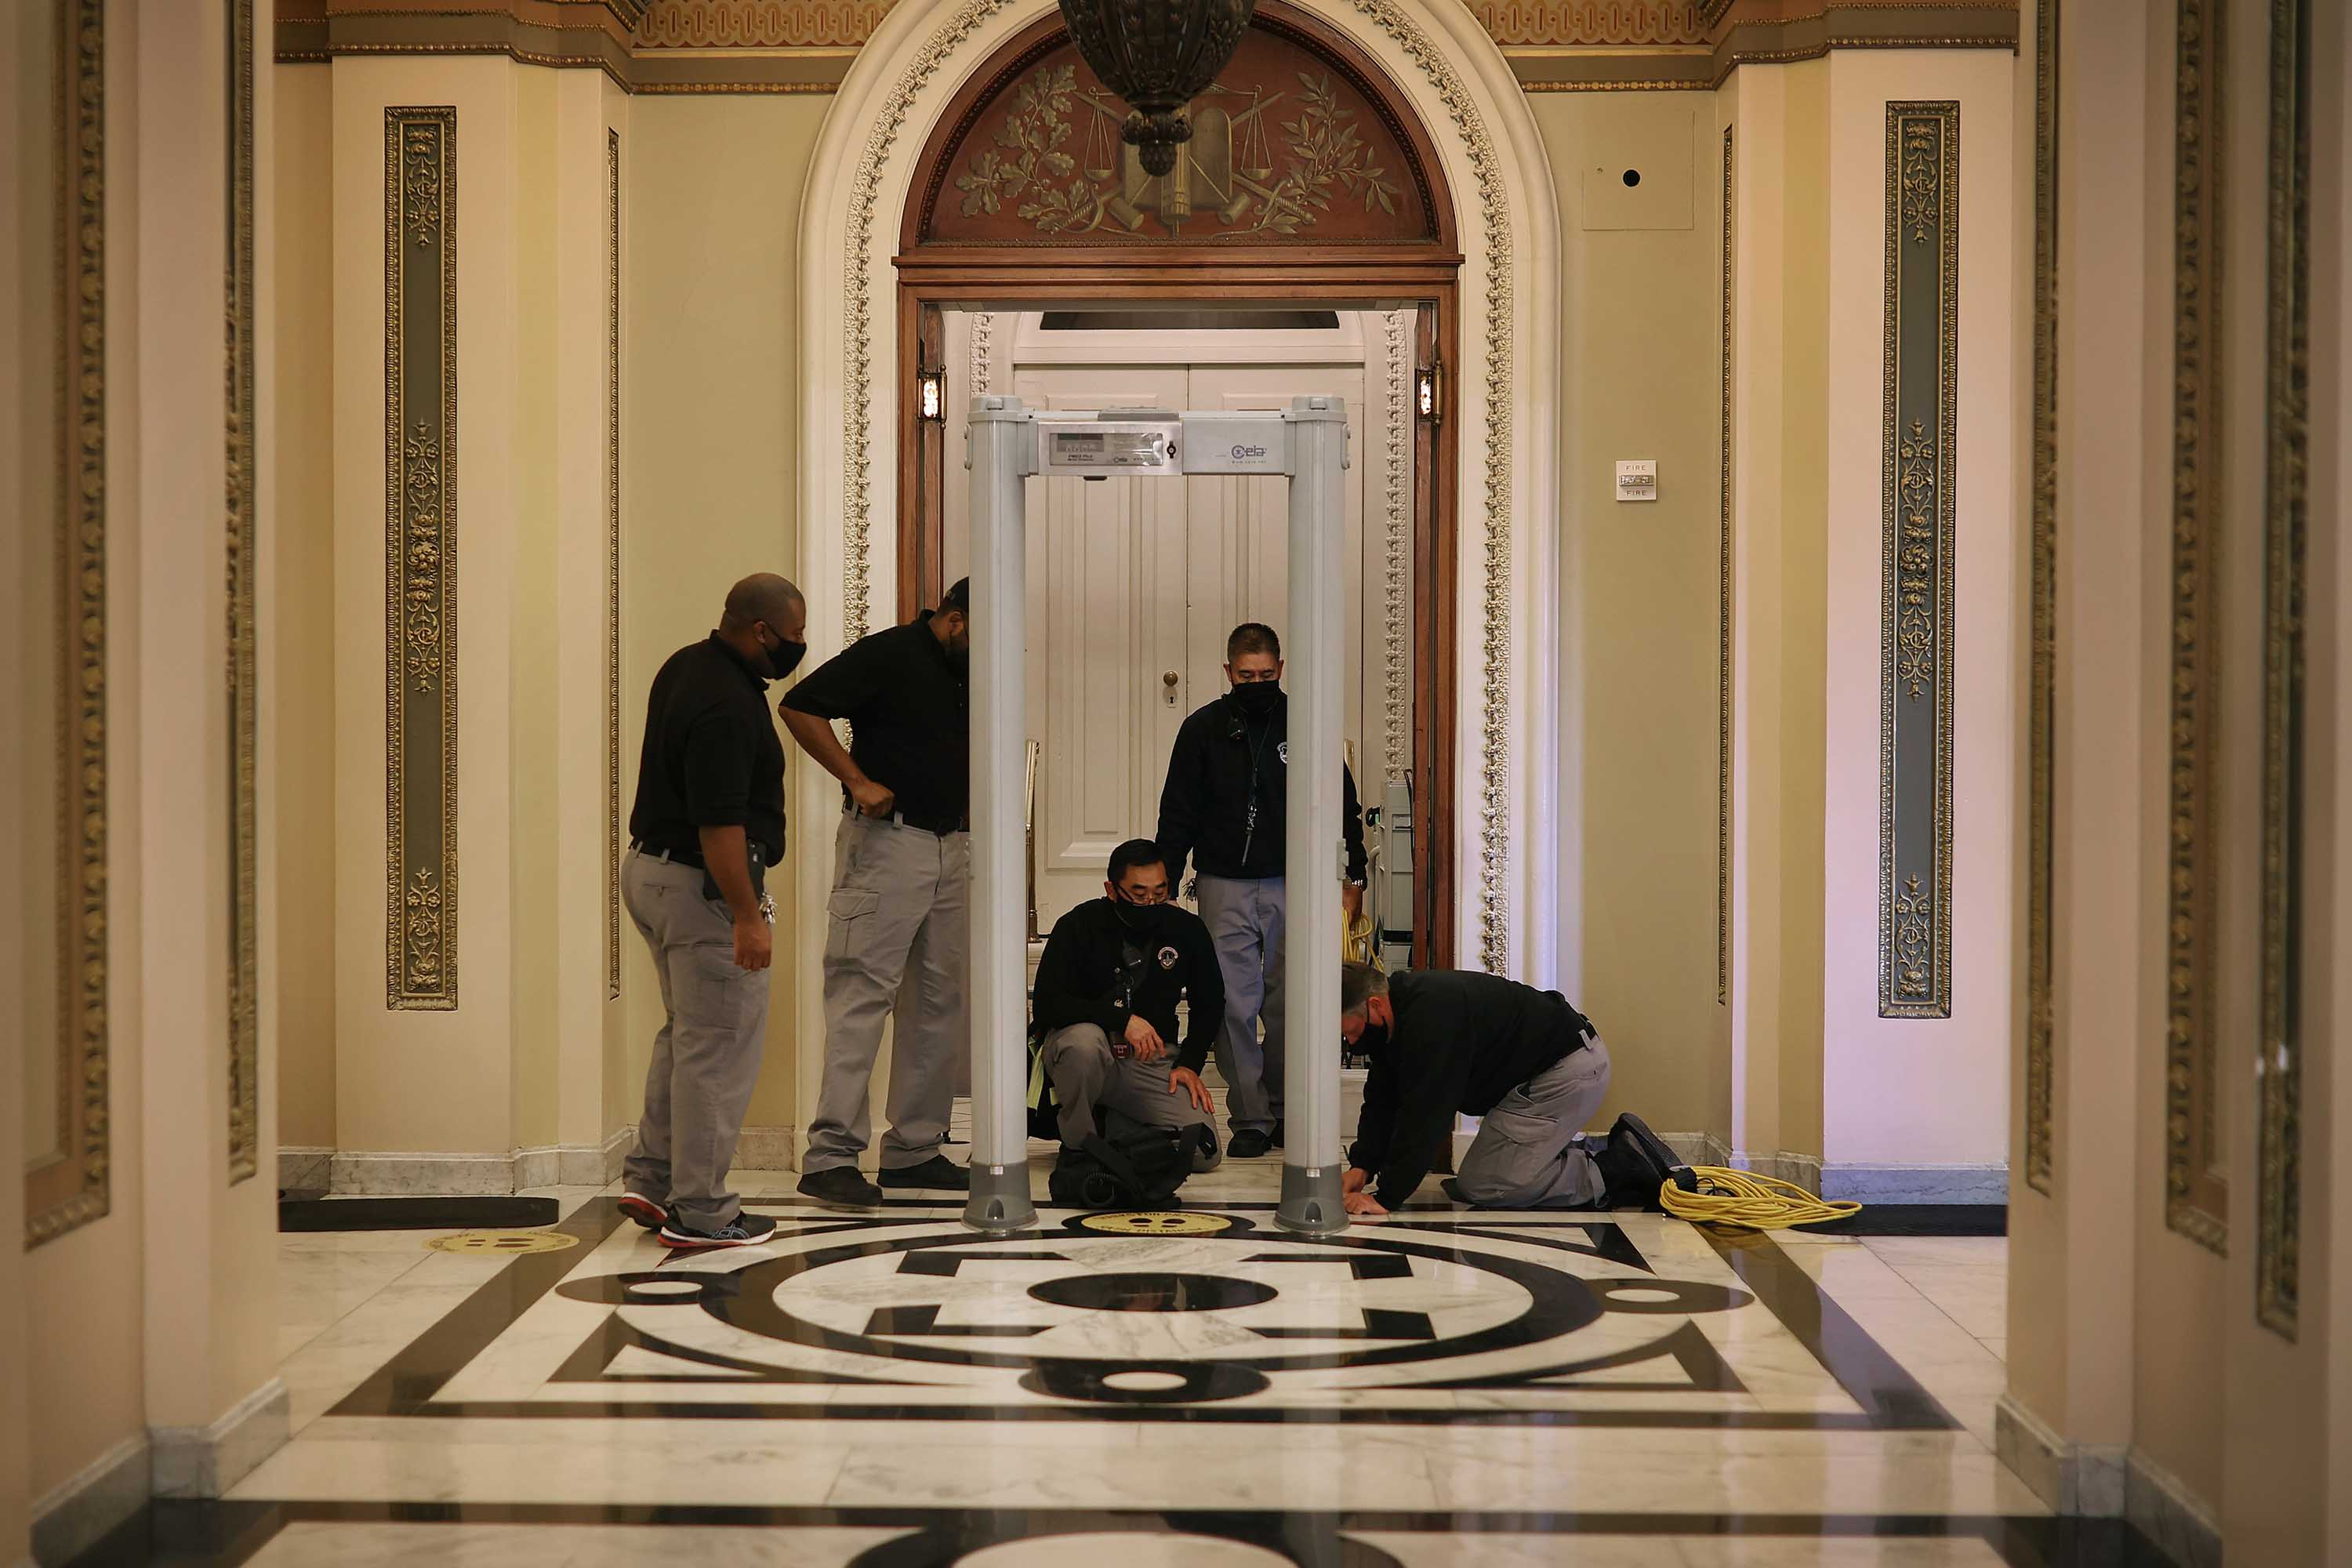 U.S. Capitol Police install a metal detector outside the House of Representatives Chamber at the US Capitol in Washington, DC, on January 12.